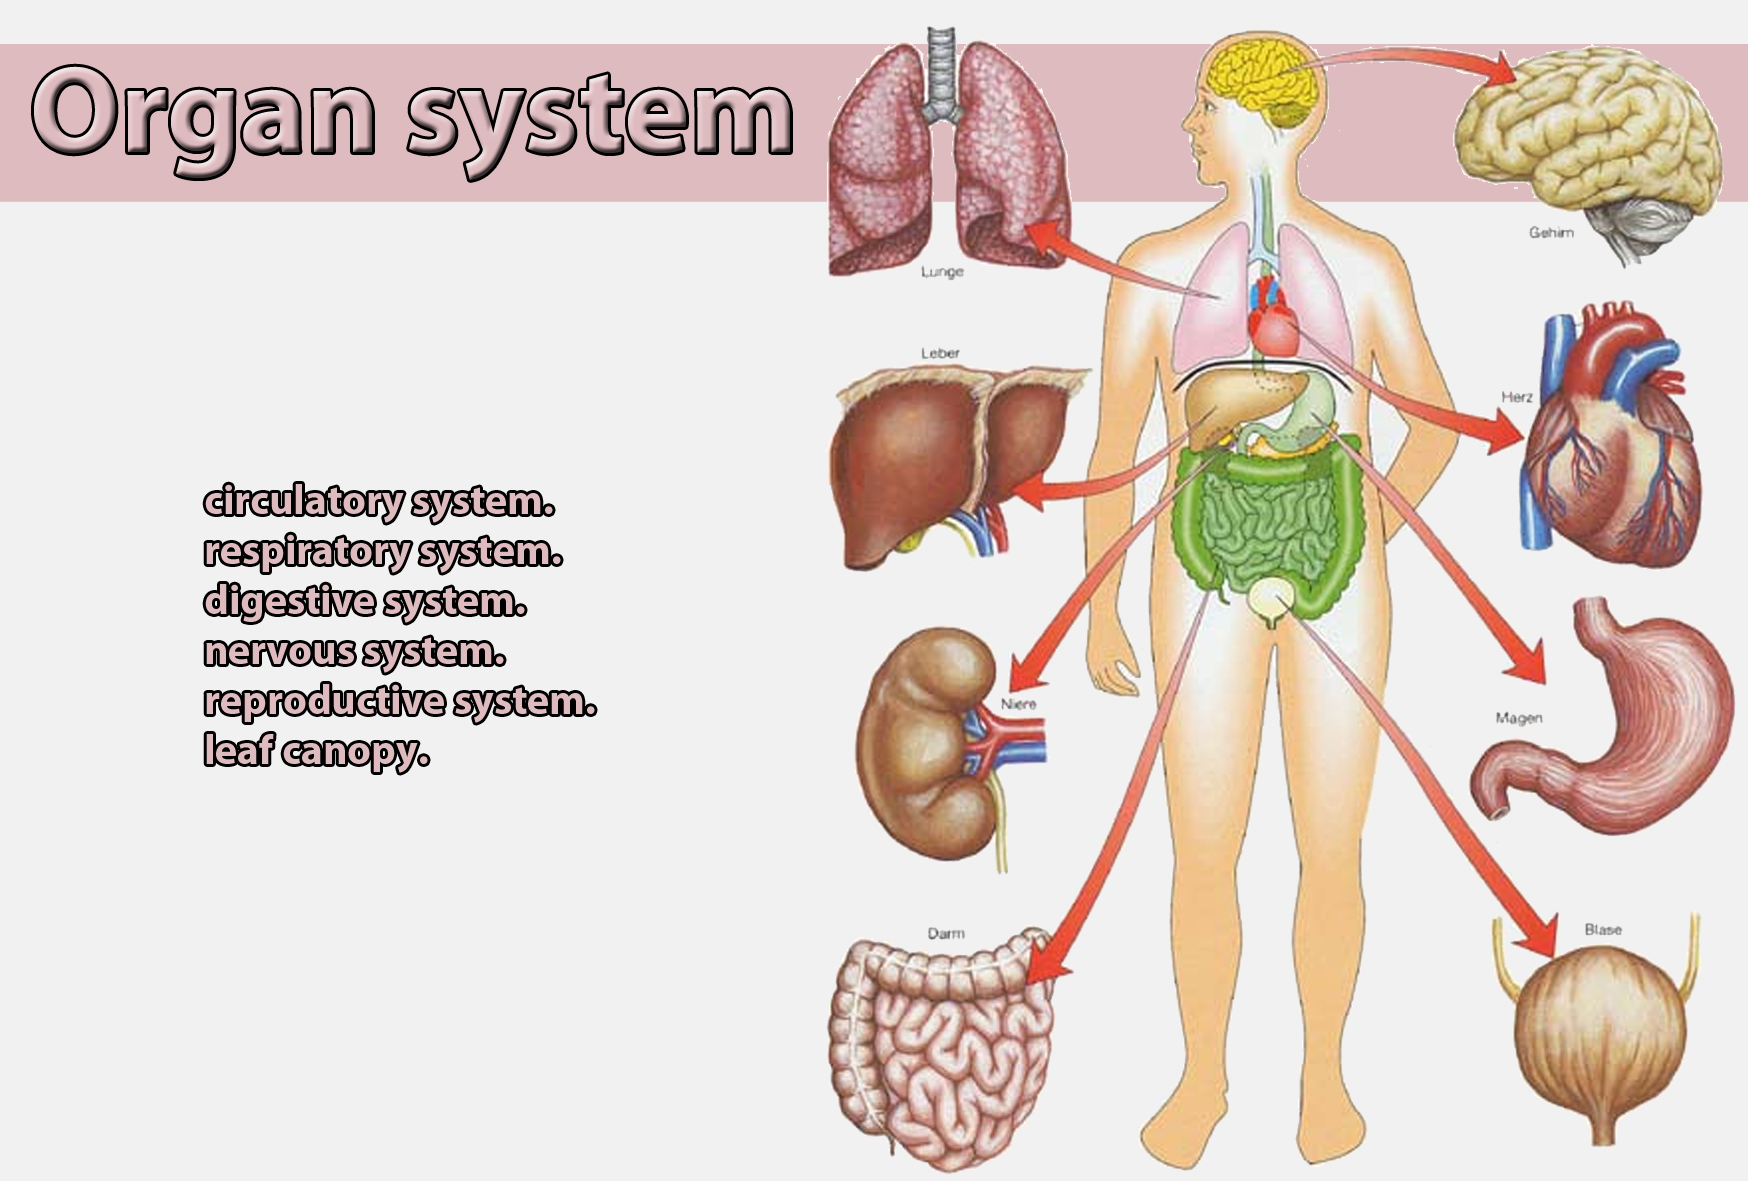 Organ System Galnet Wiki Fandom Powered By Wikia